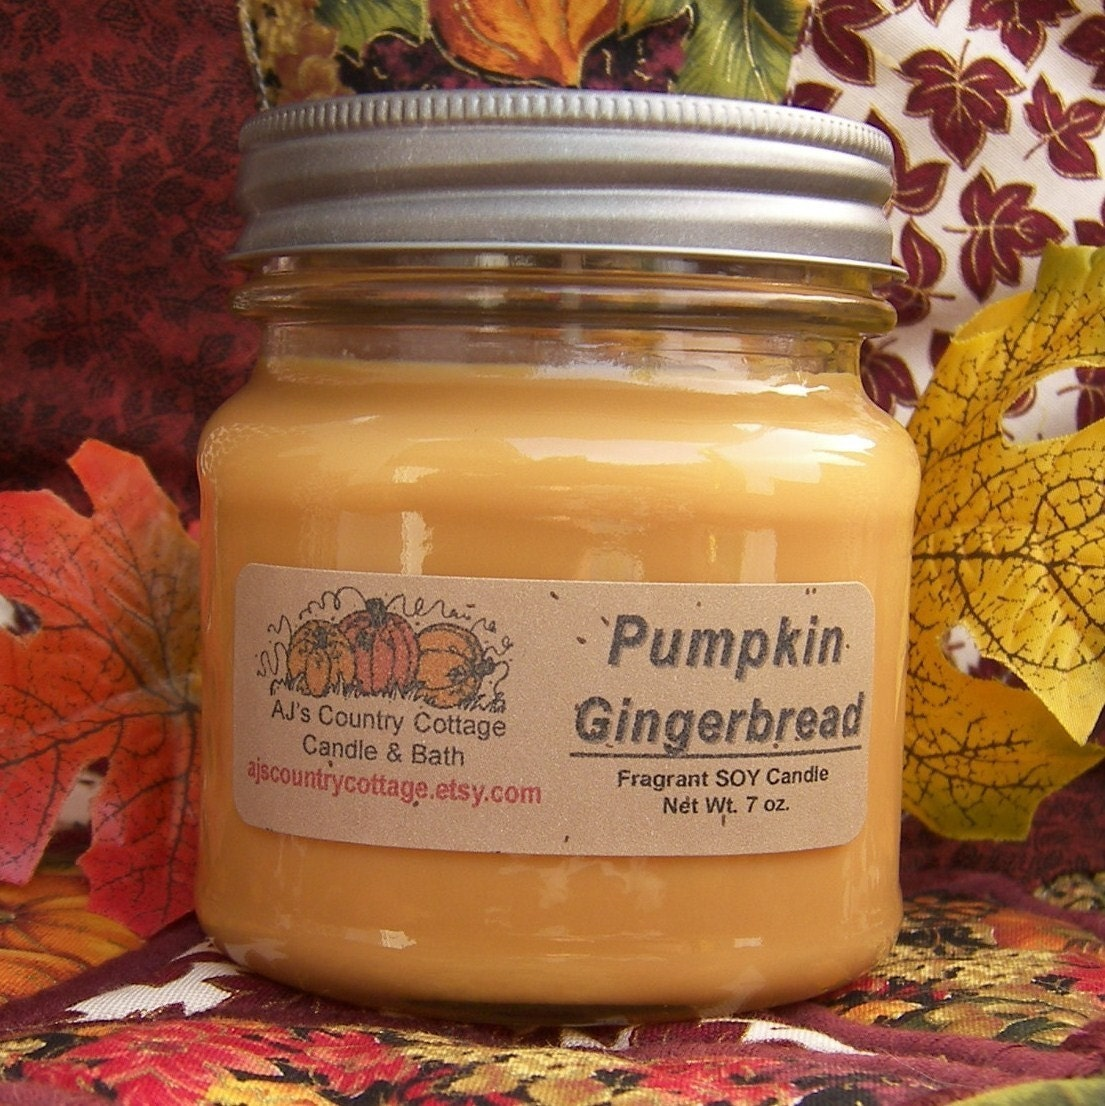 NEW PUMPKIN GINGERBREAD SOY CANDLE - HIGHLY SCENTED - VEGAN